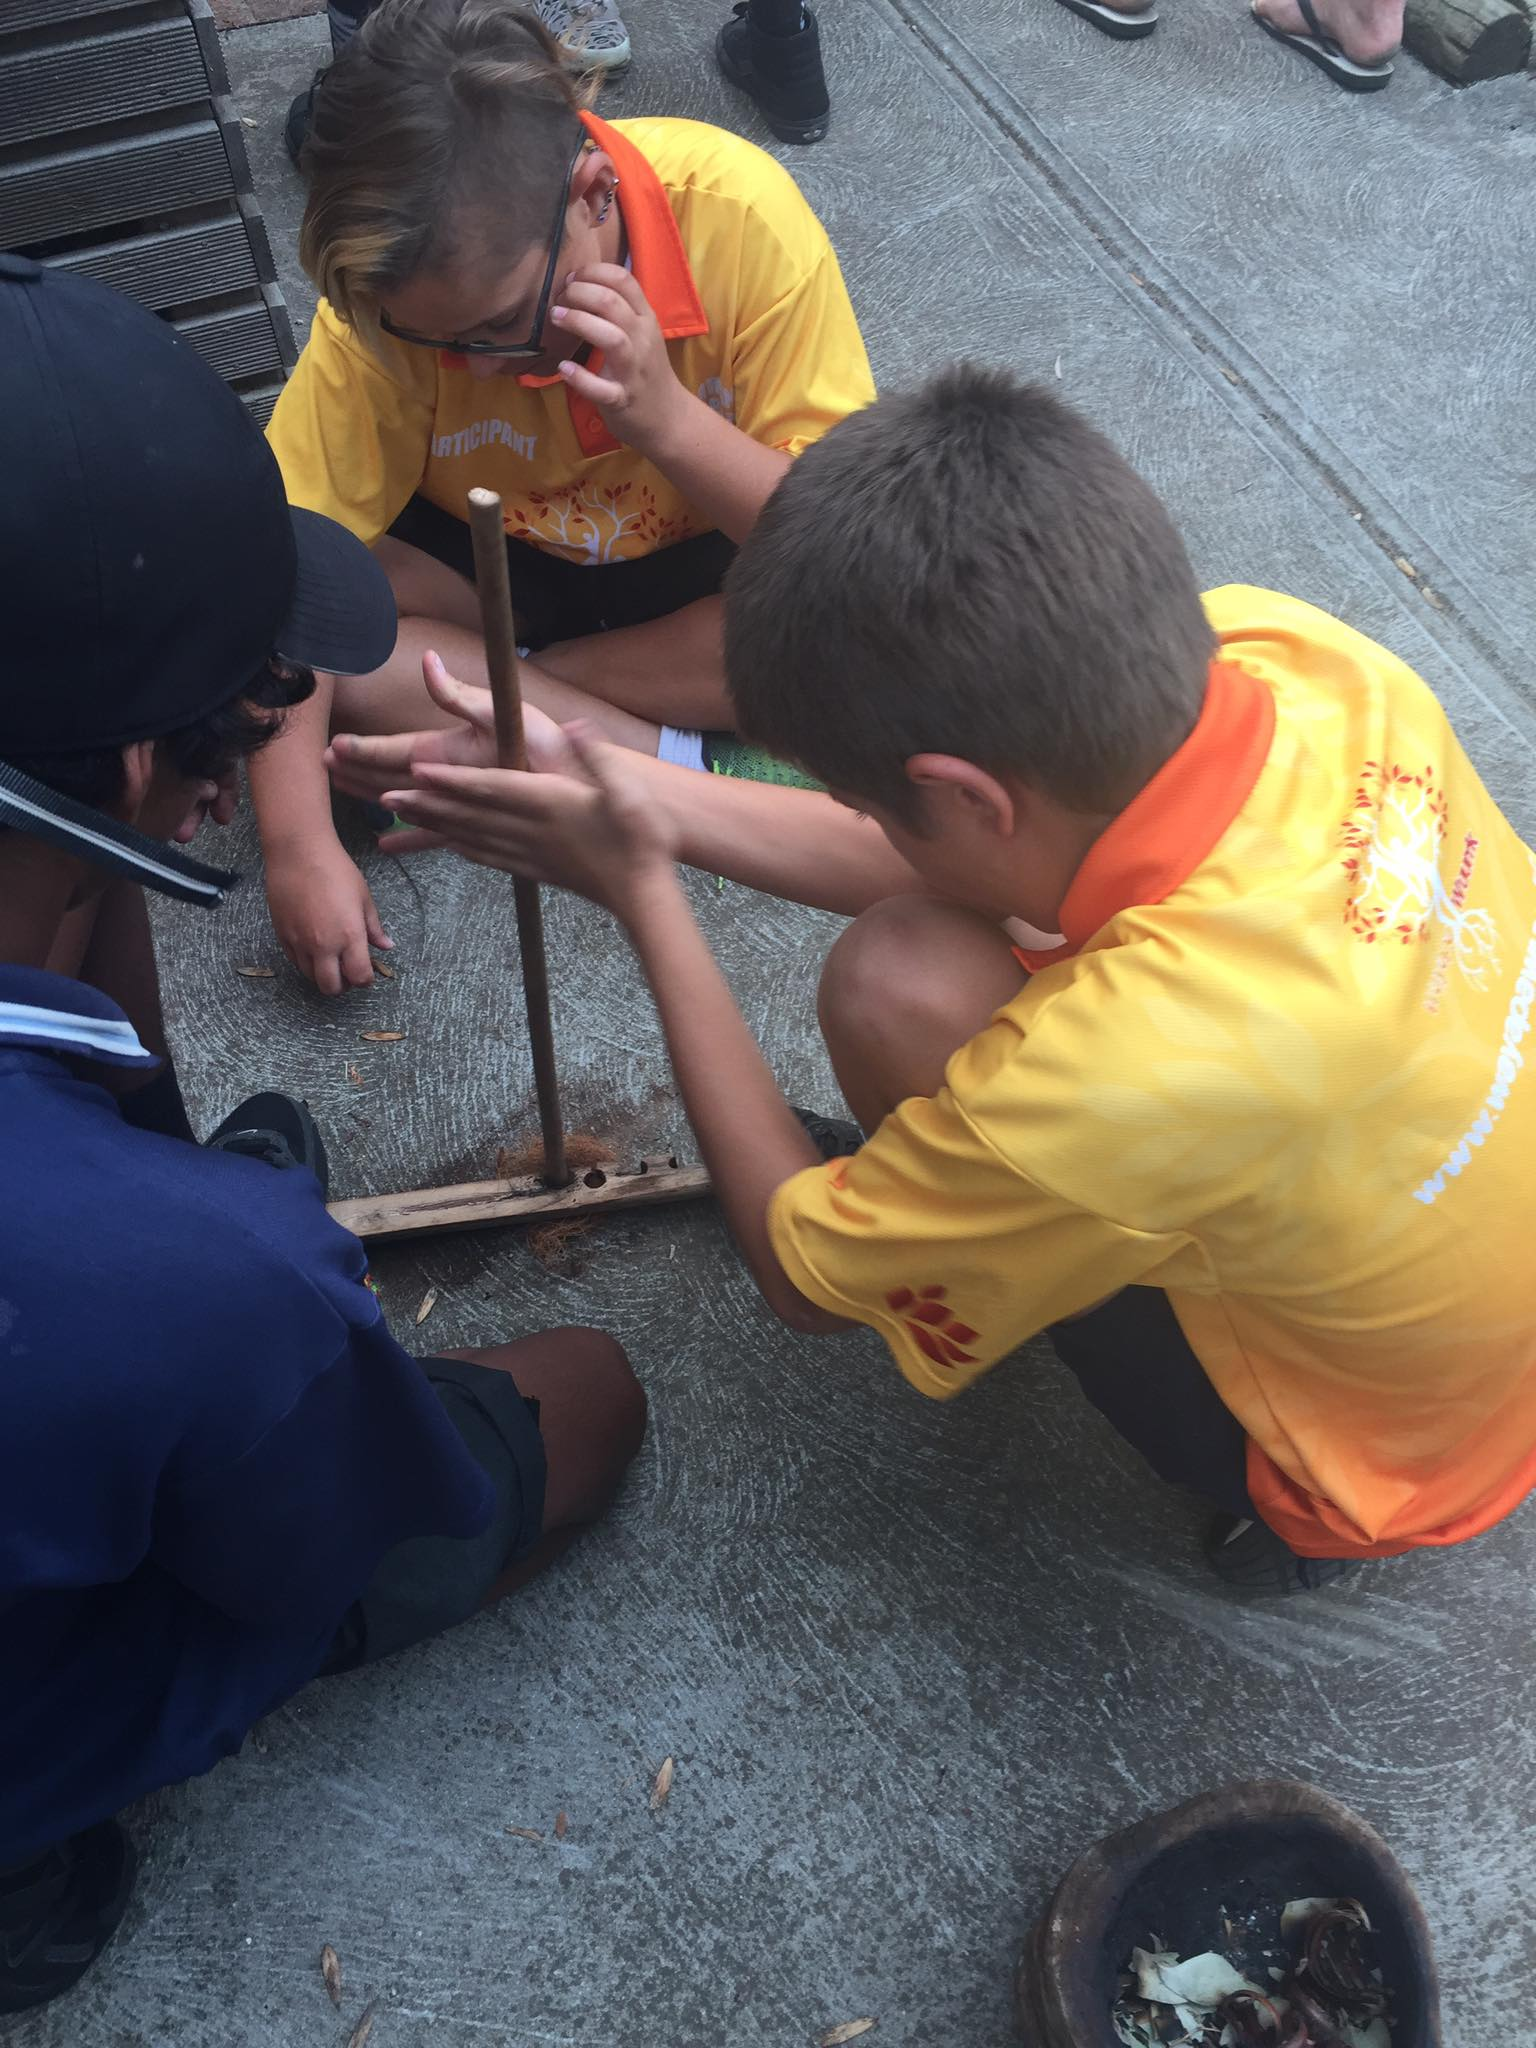 Aboriginal boys lighting fire traditionally